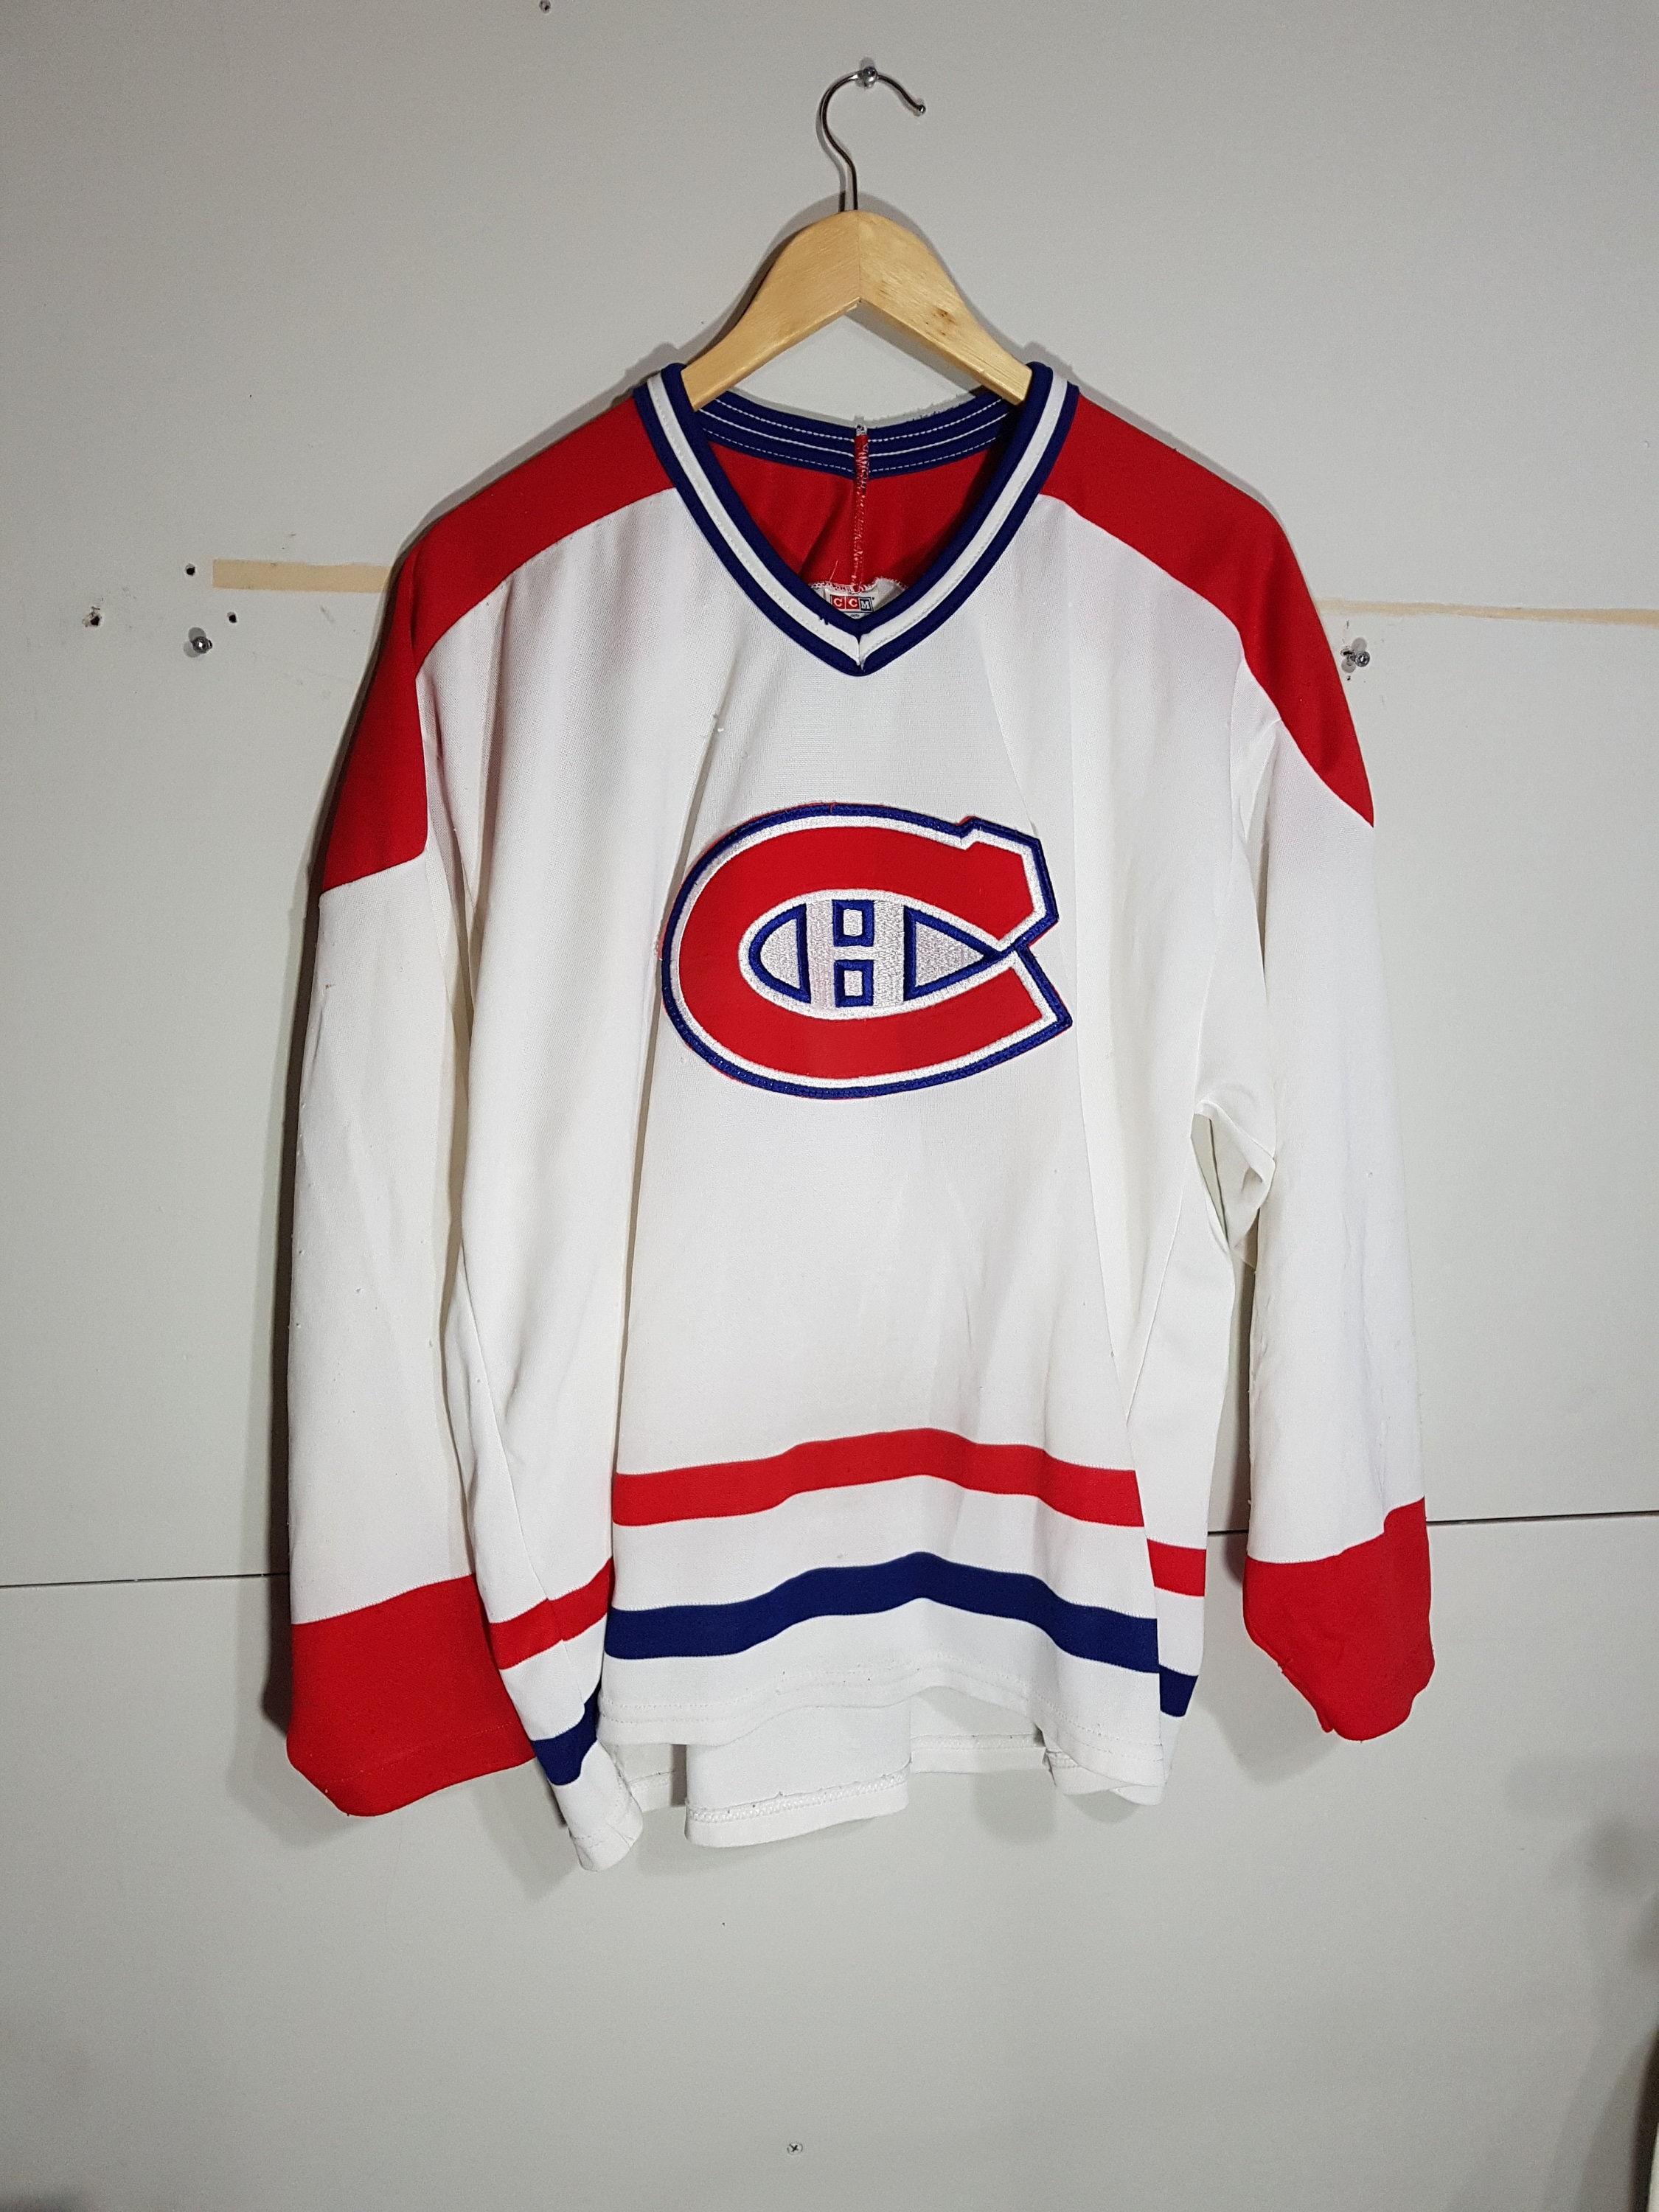 promo code 67cf6 2a0f3 Vintage Montreal Canadiens jersey, Montreal Canadians jersey, 90 s CCM  jersey, authentic, NHL jerseys, Habs, the forum, Carey Price